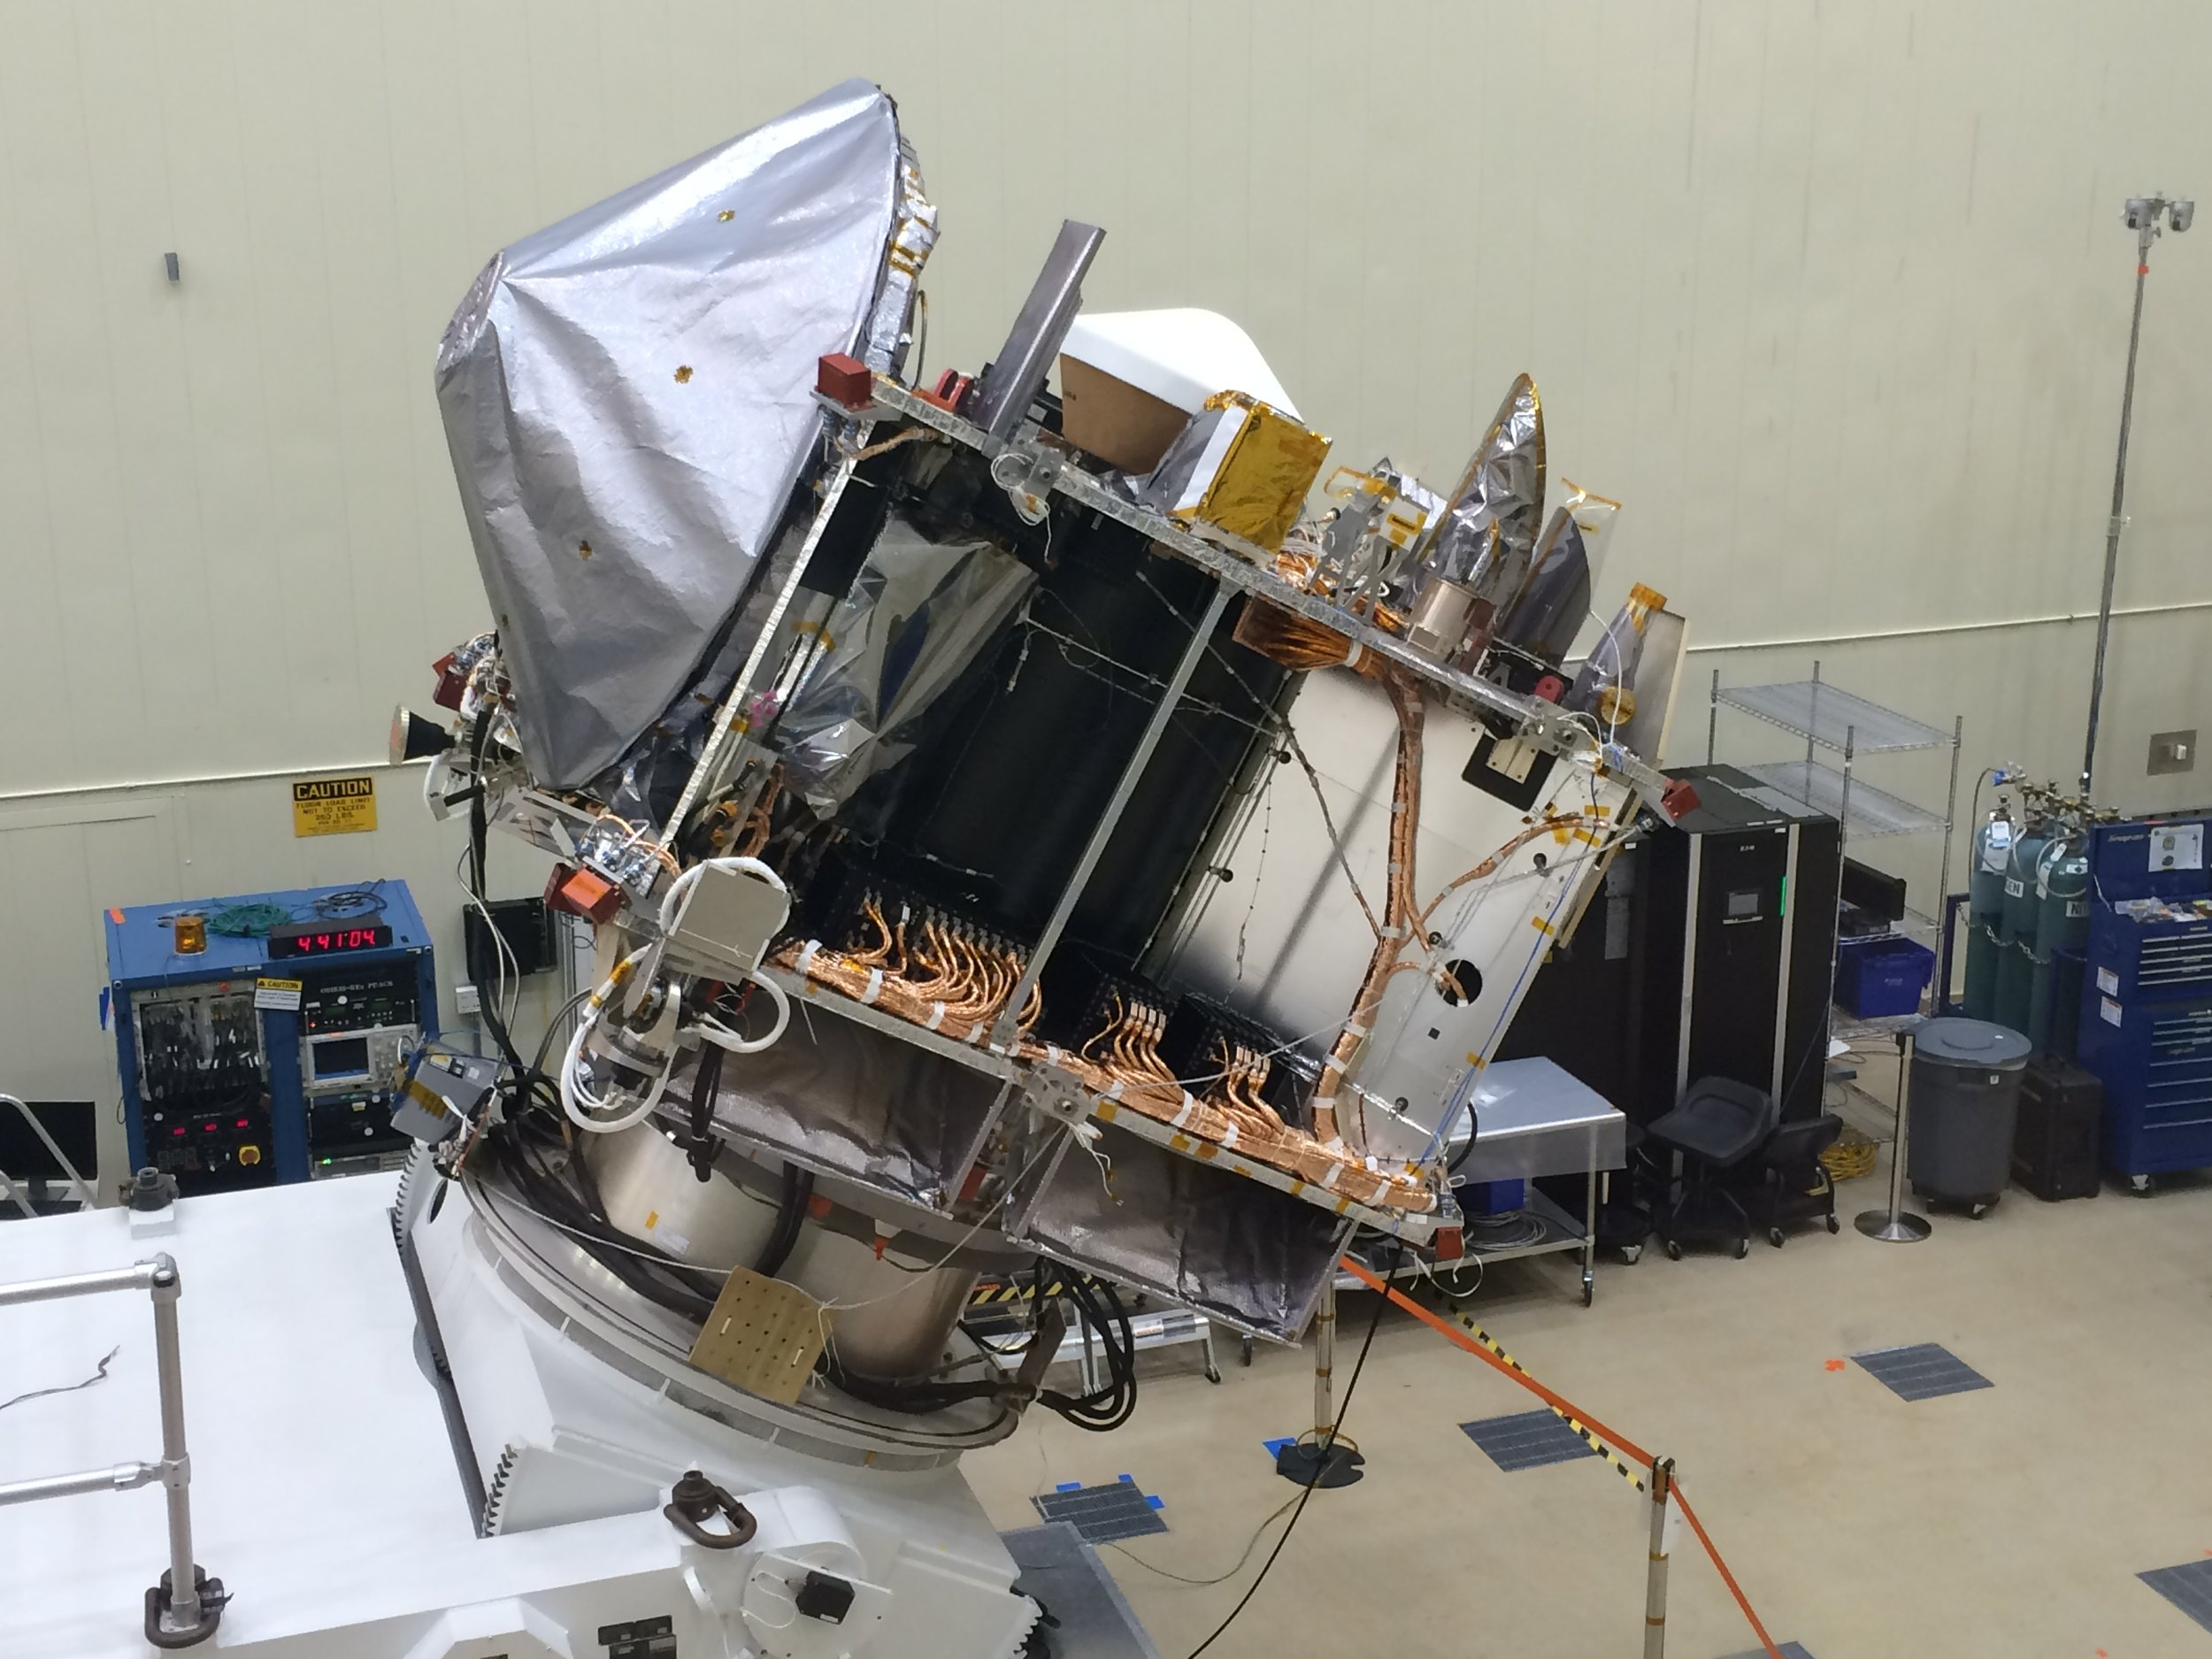 OSIRIS-REx in the clean room at Lockheed Martin in April 2016 after the completion of testing and the final stowage of the TAGSAM arm. Image credit: University of Arizona/Christine Hoekenga